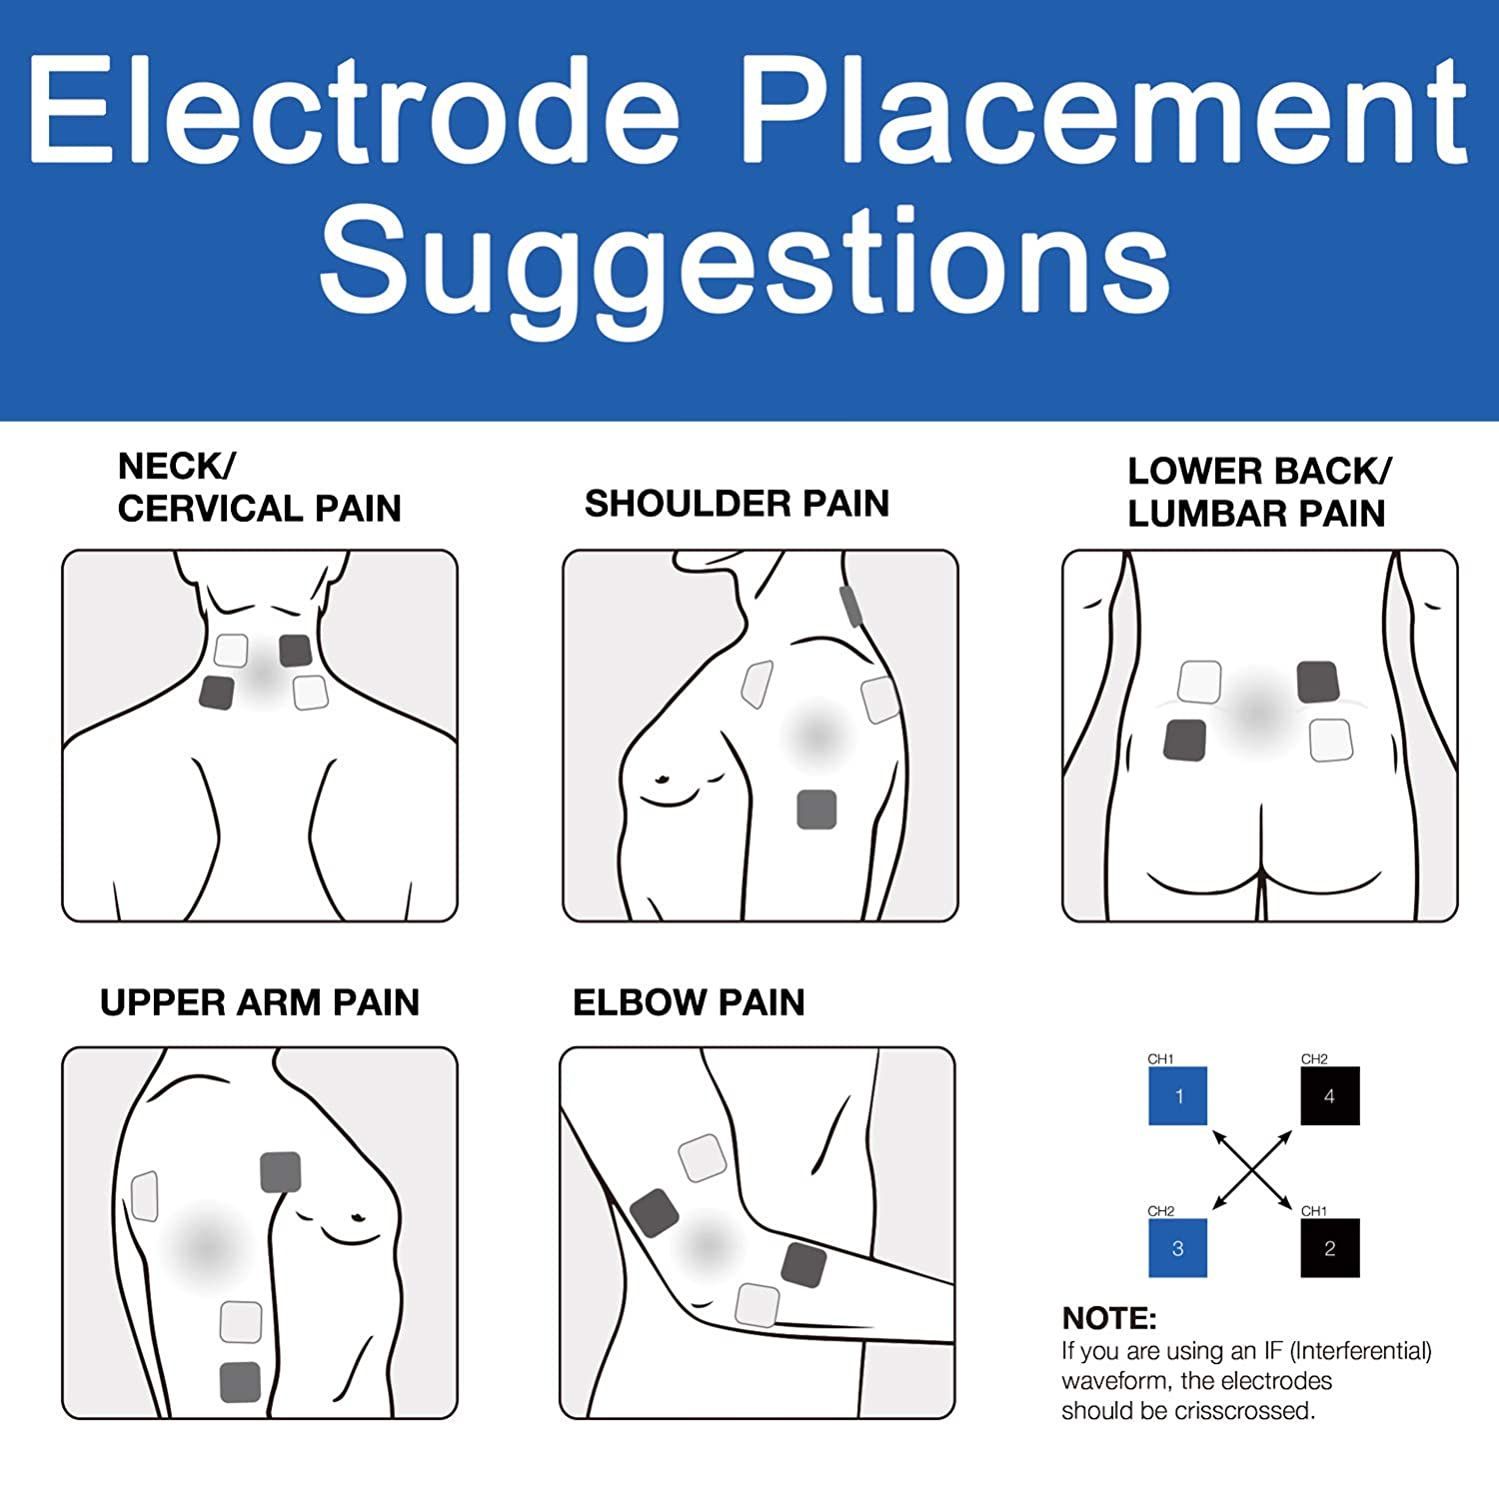 Electrode placement guide